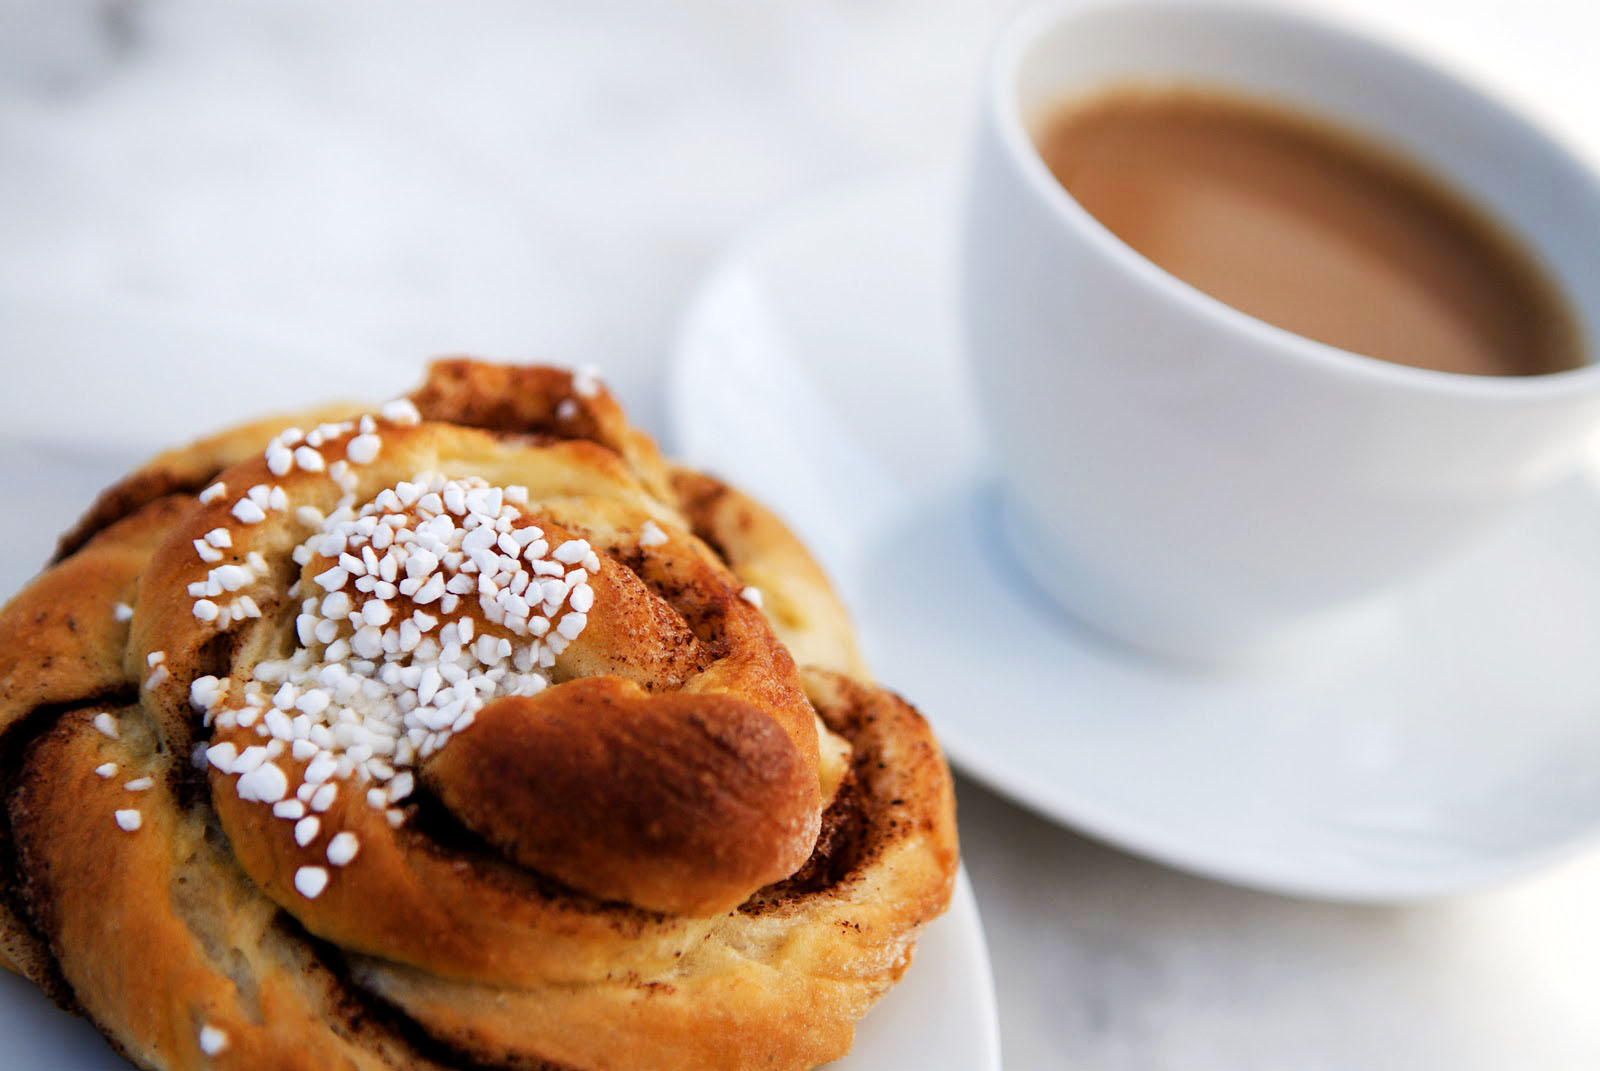 Celebrate 'Cinnamon Bun Day' with our updated Fika Playlist!